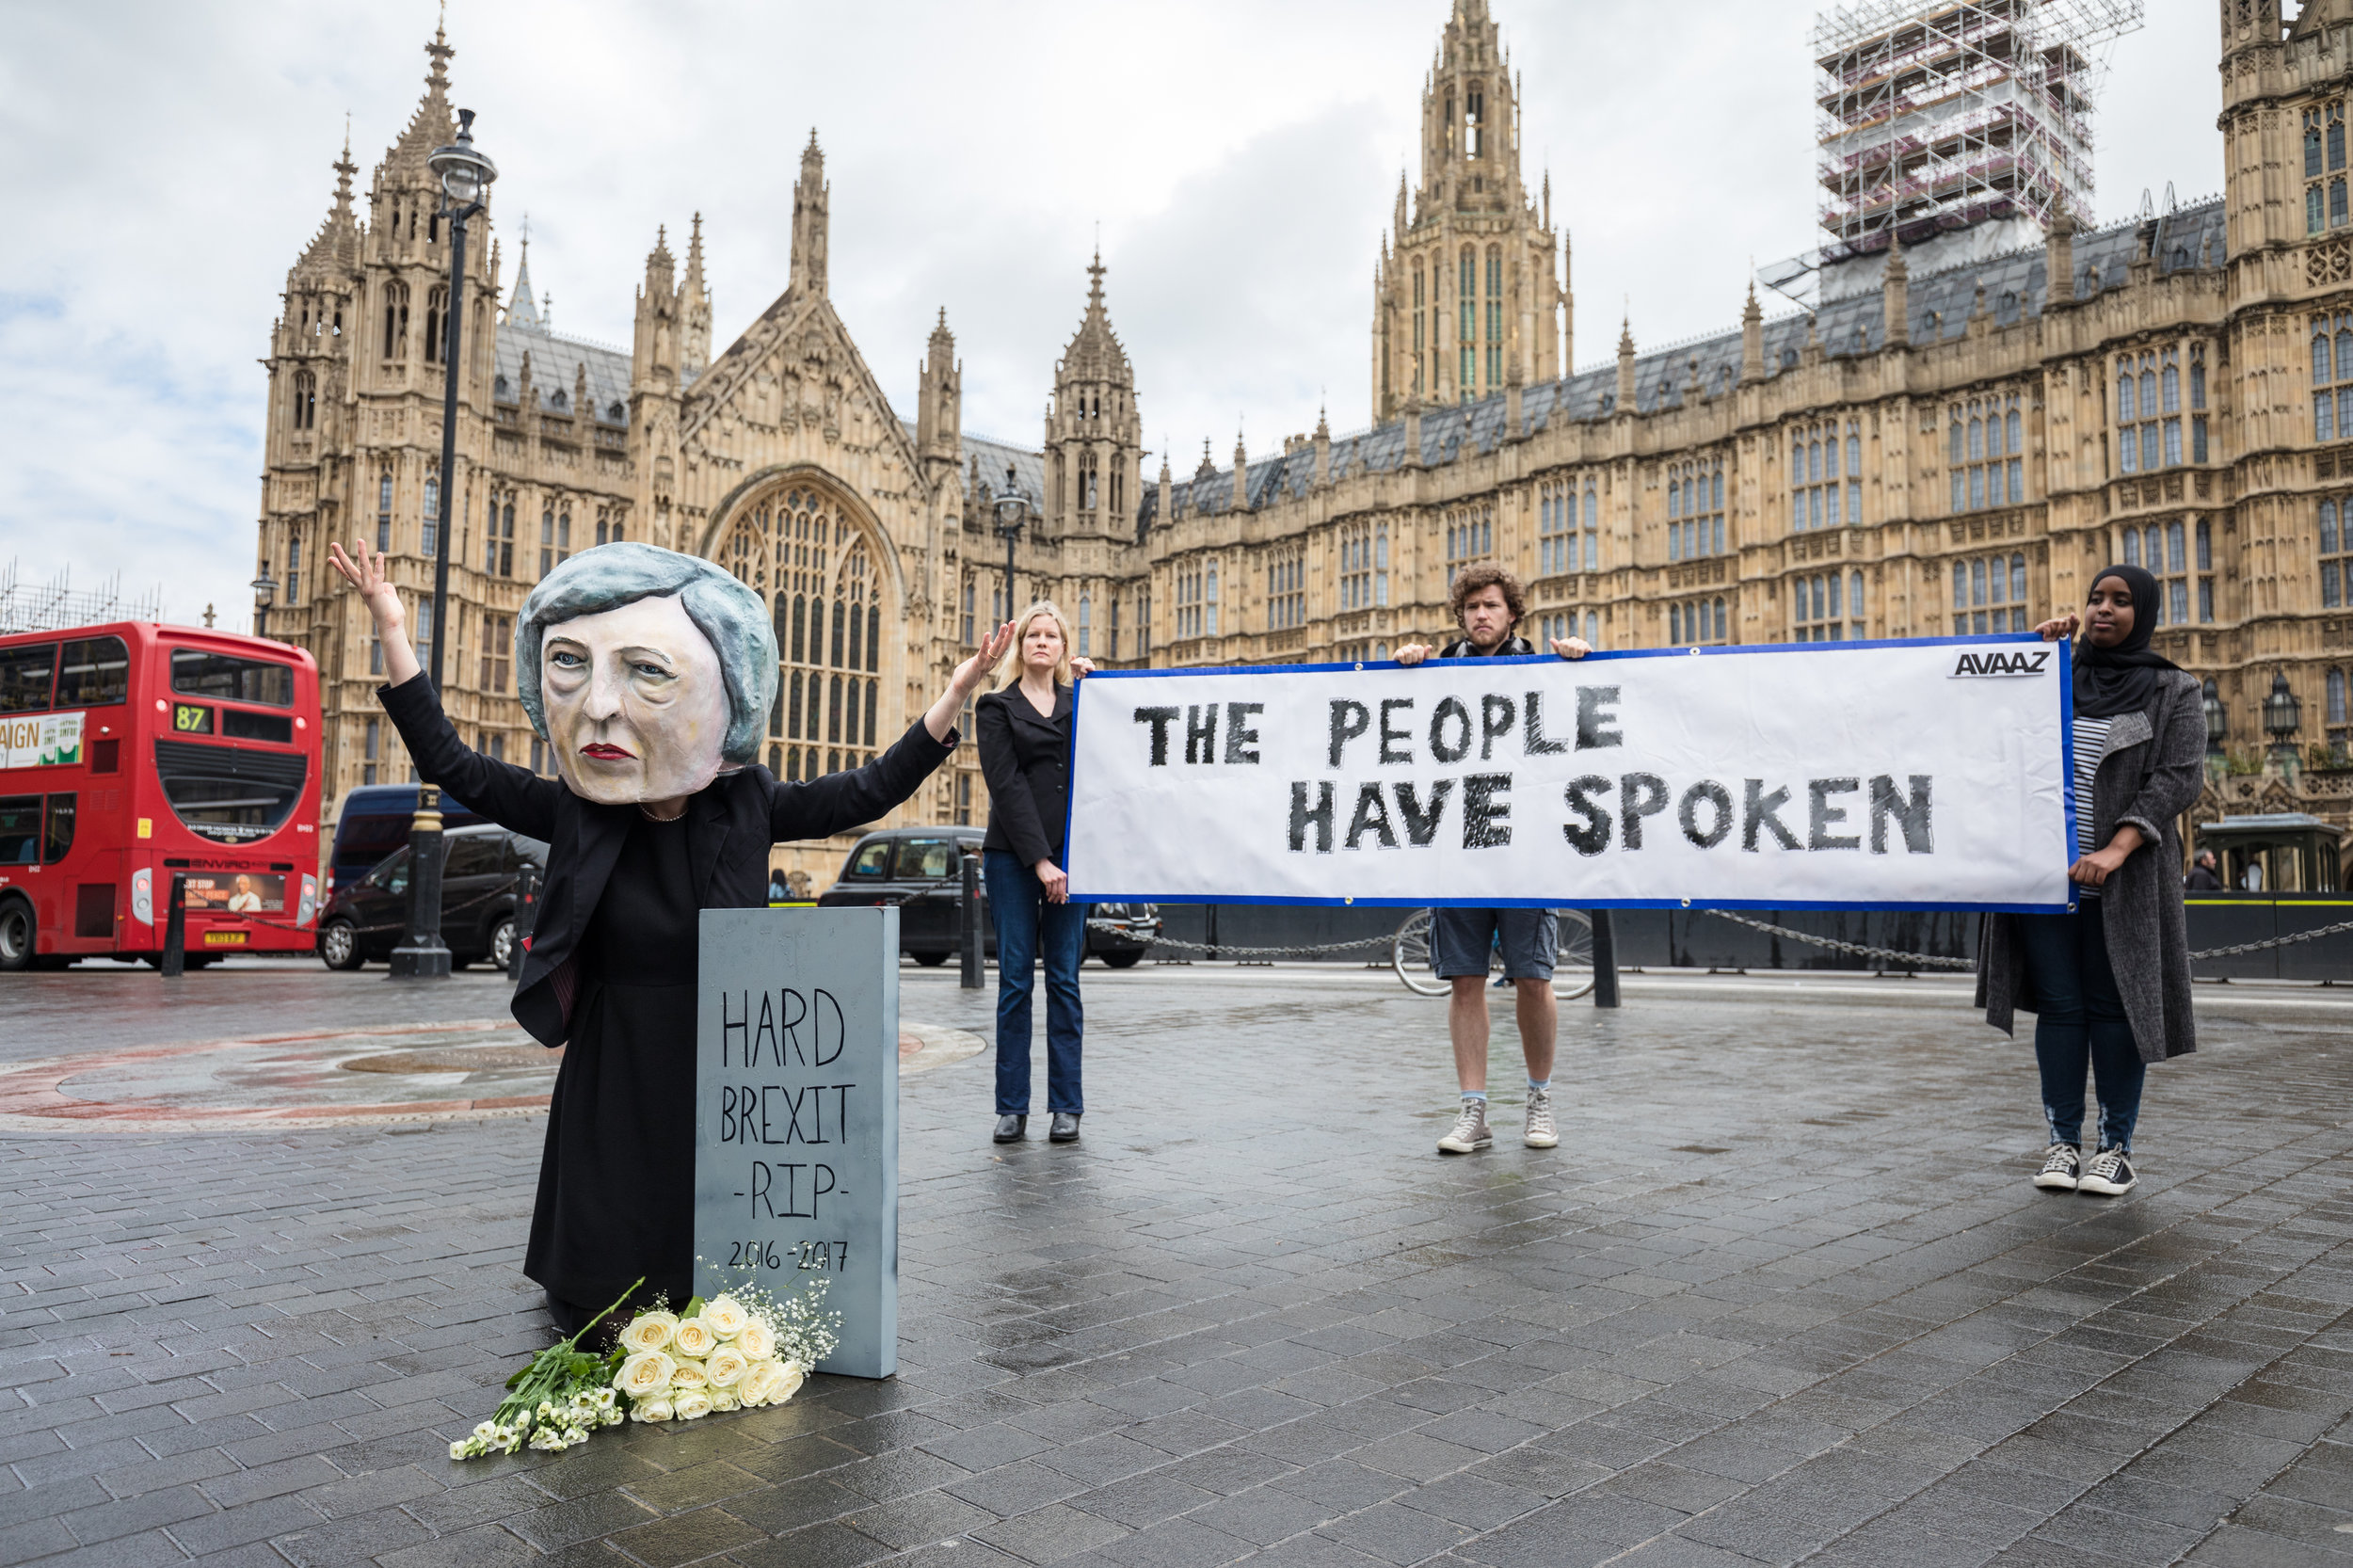 A demonstrator dressed as Prime Minister Theresa May protesting the day after May's Conservative Party lost its majority in Parliament ( source )